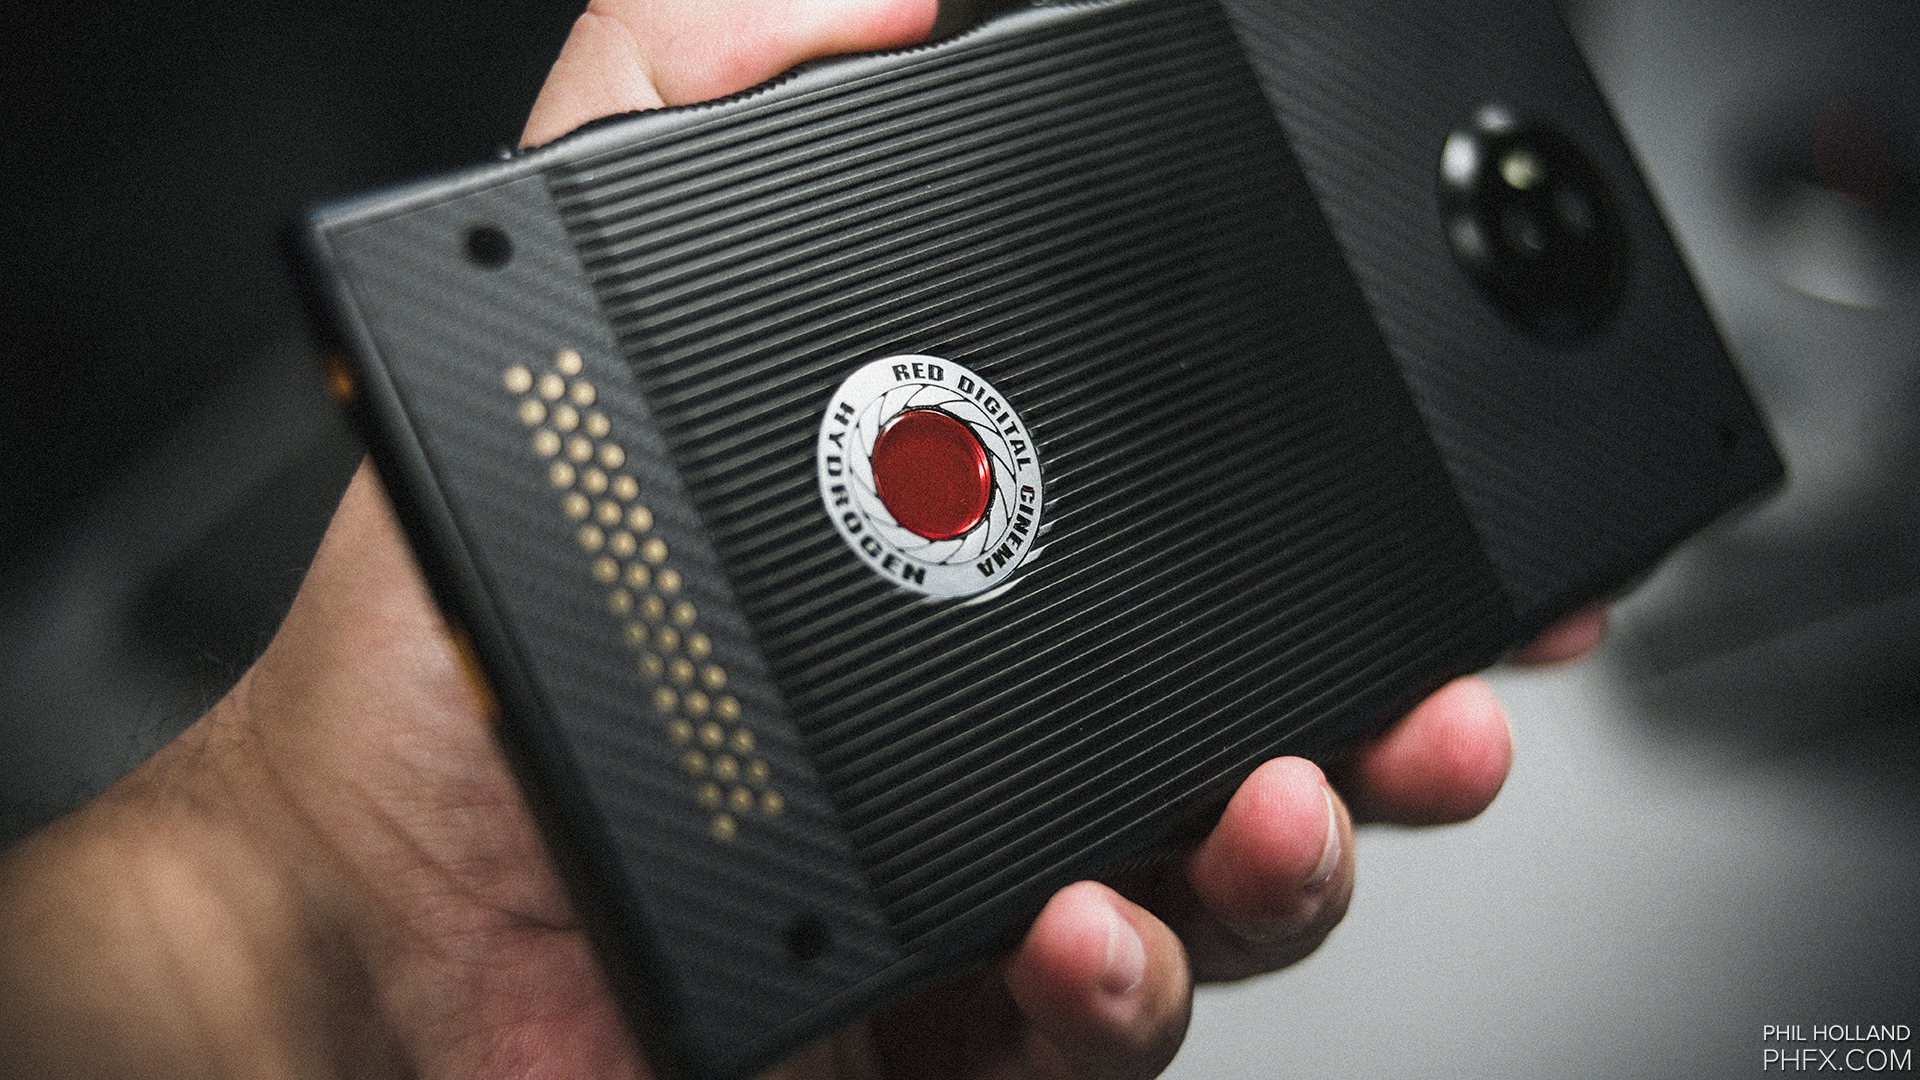 RED Hydrogen One - Hands On